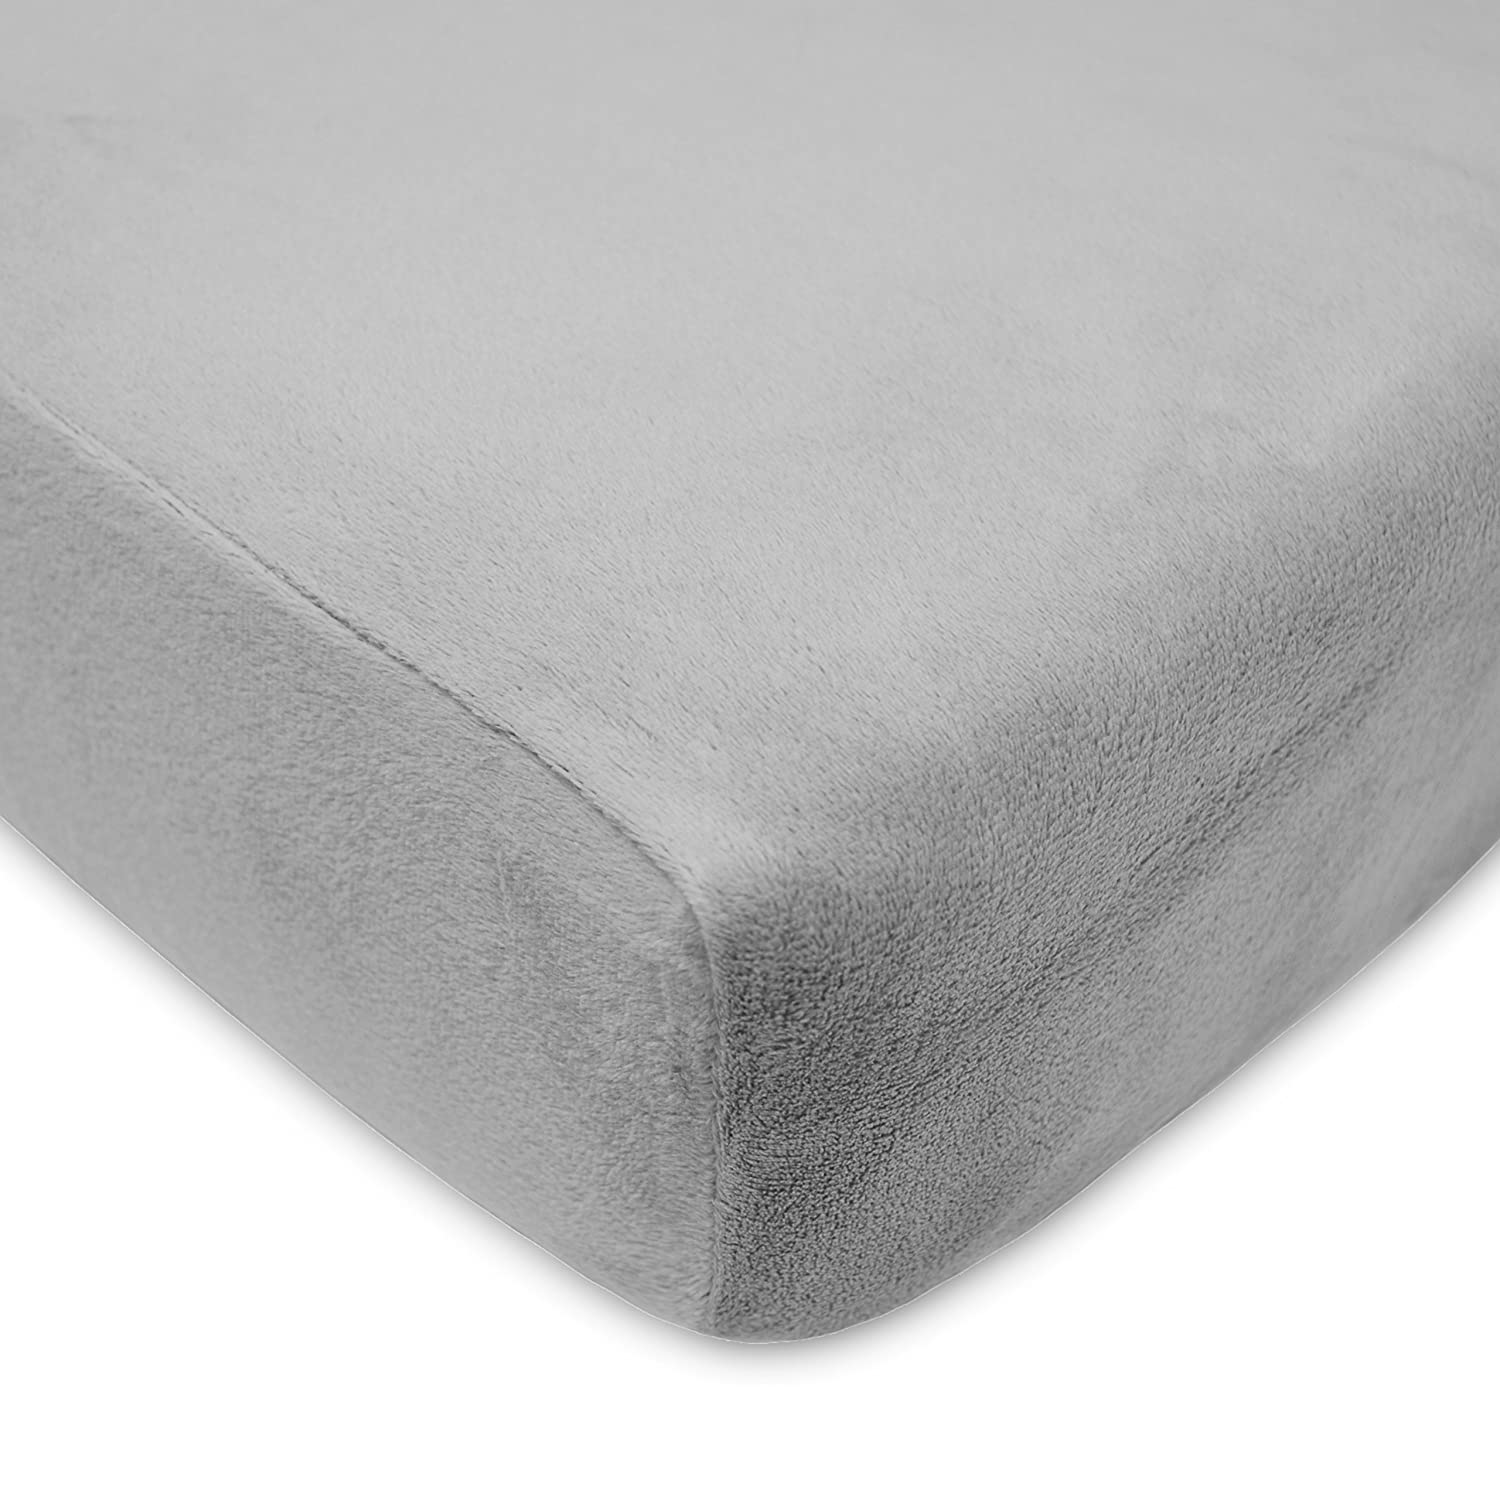 American Baby Company Heavenly Soft Chenille Fitted Crib Sheet for Standard Crib and Toddler Mattresses, Steel Gray, for Boys and Girls, Pack of 1